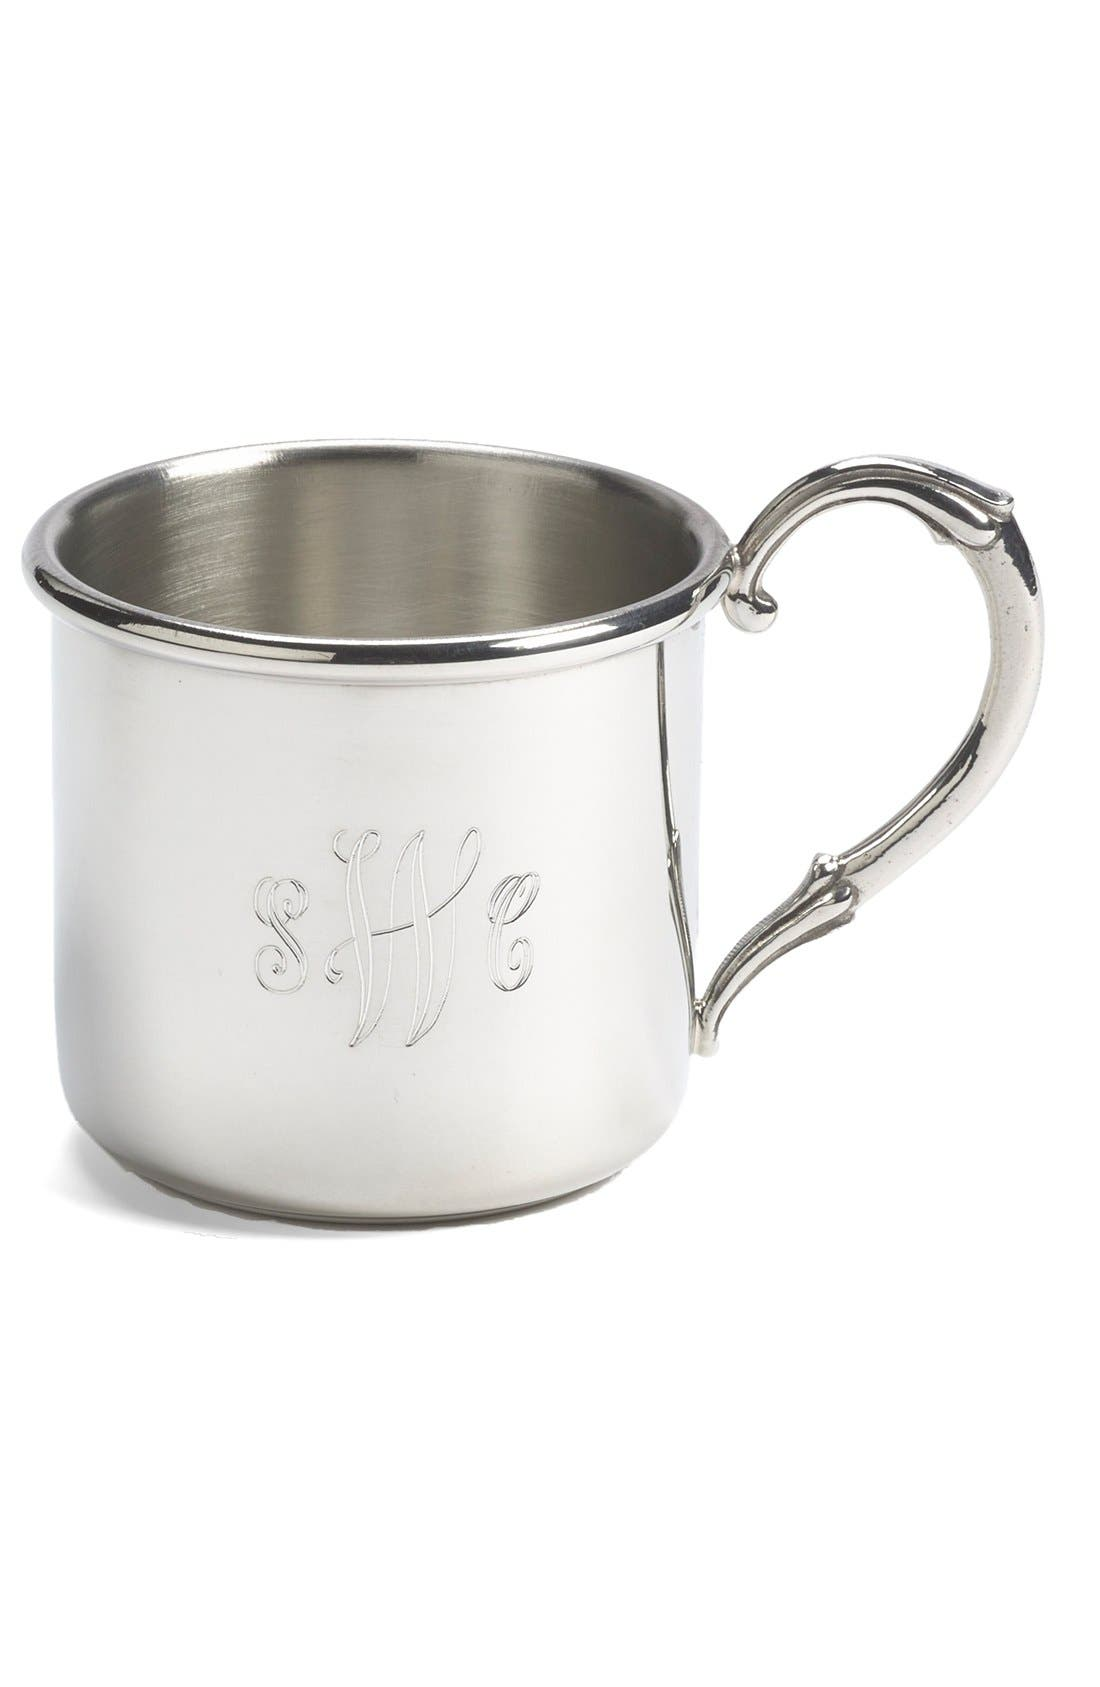 'Easton' Personalized Sterling Silver Cup,                             Main thumbnail 1, color,                             NONE